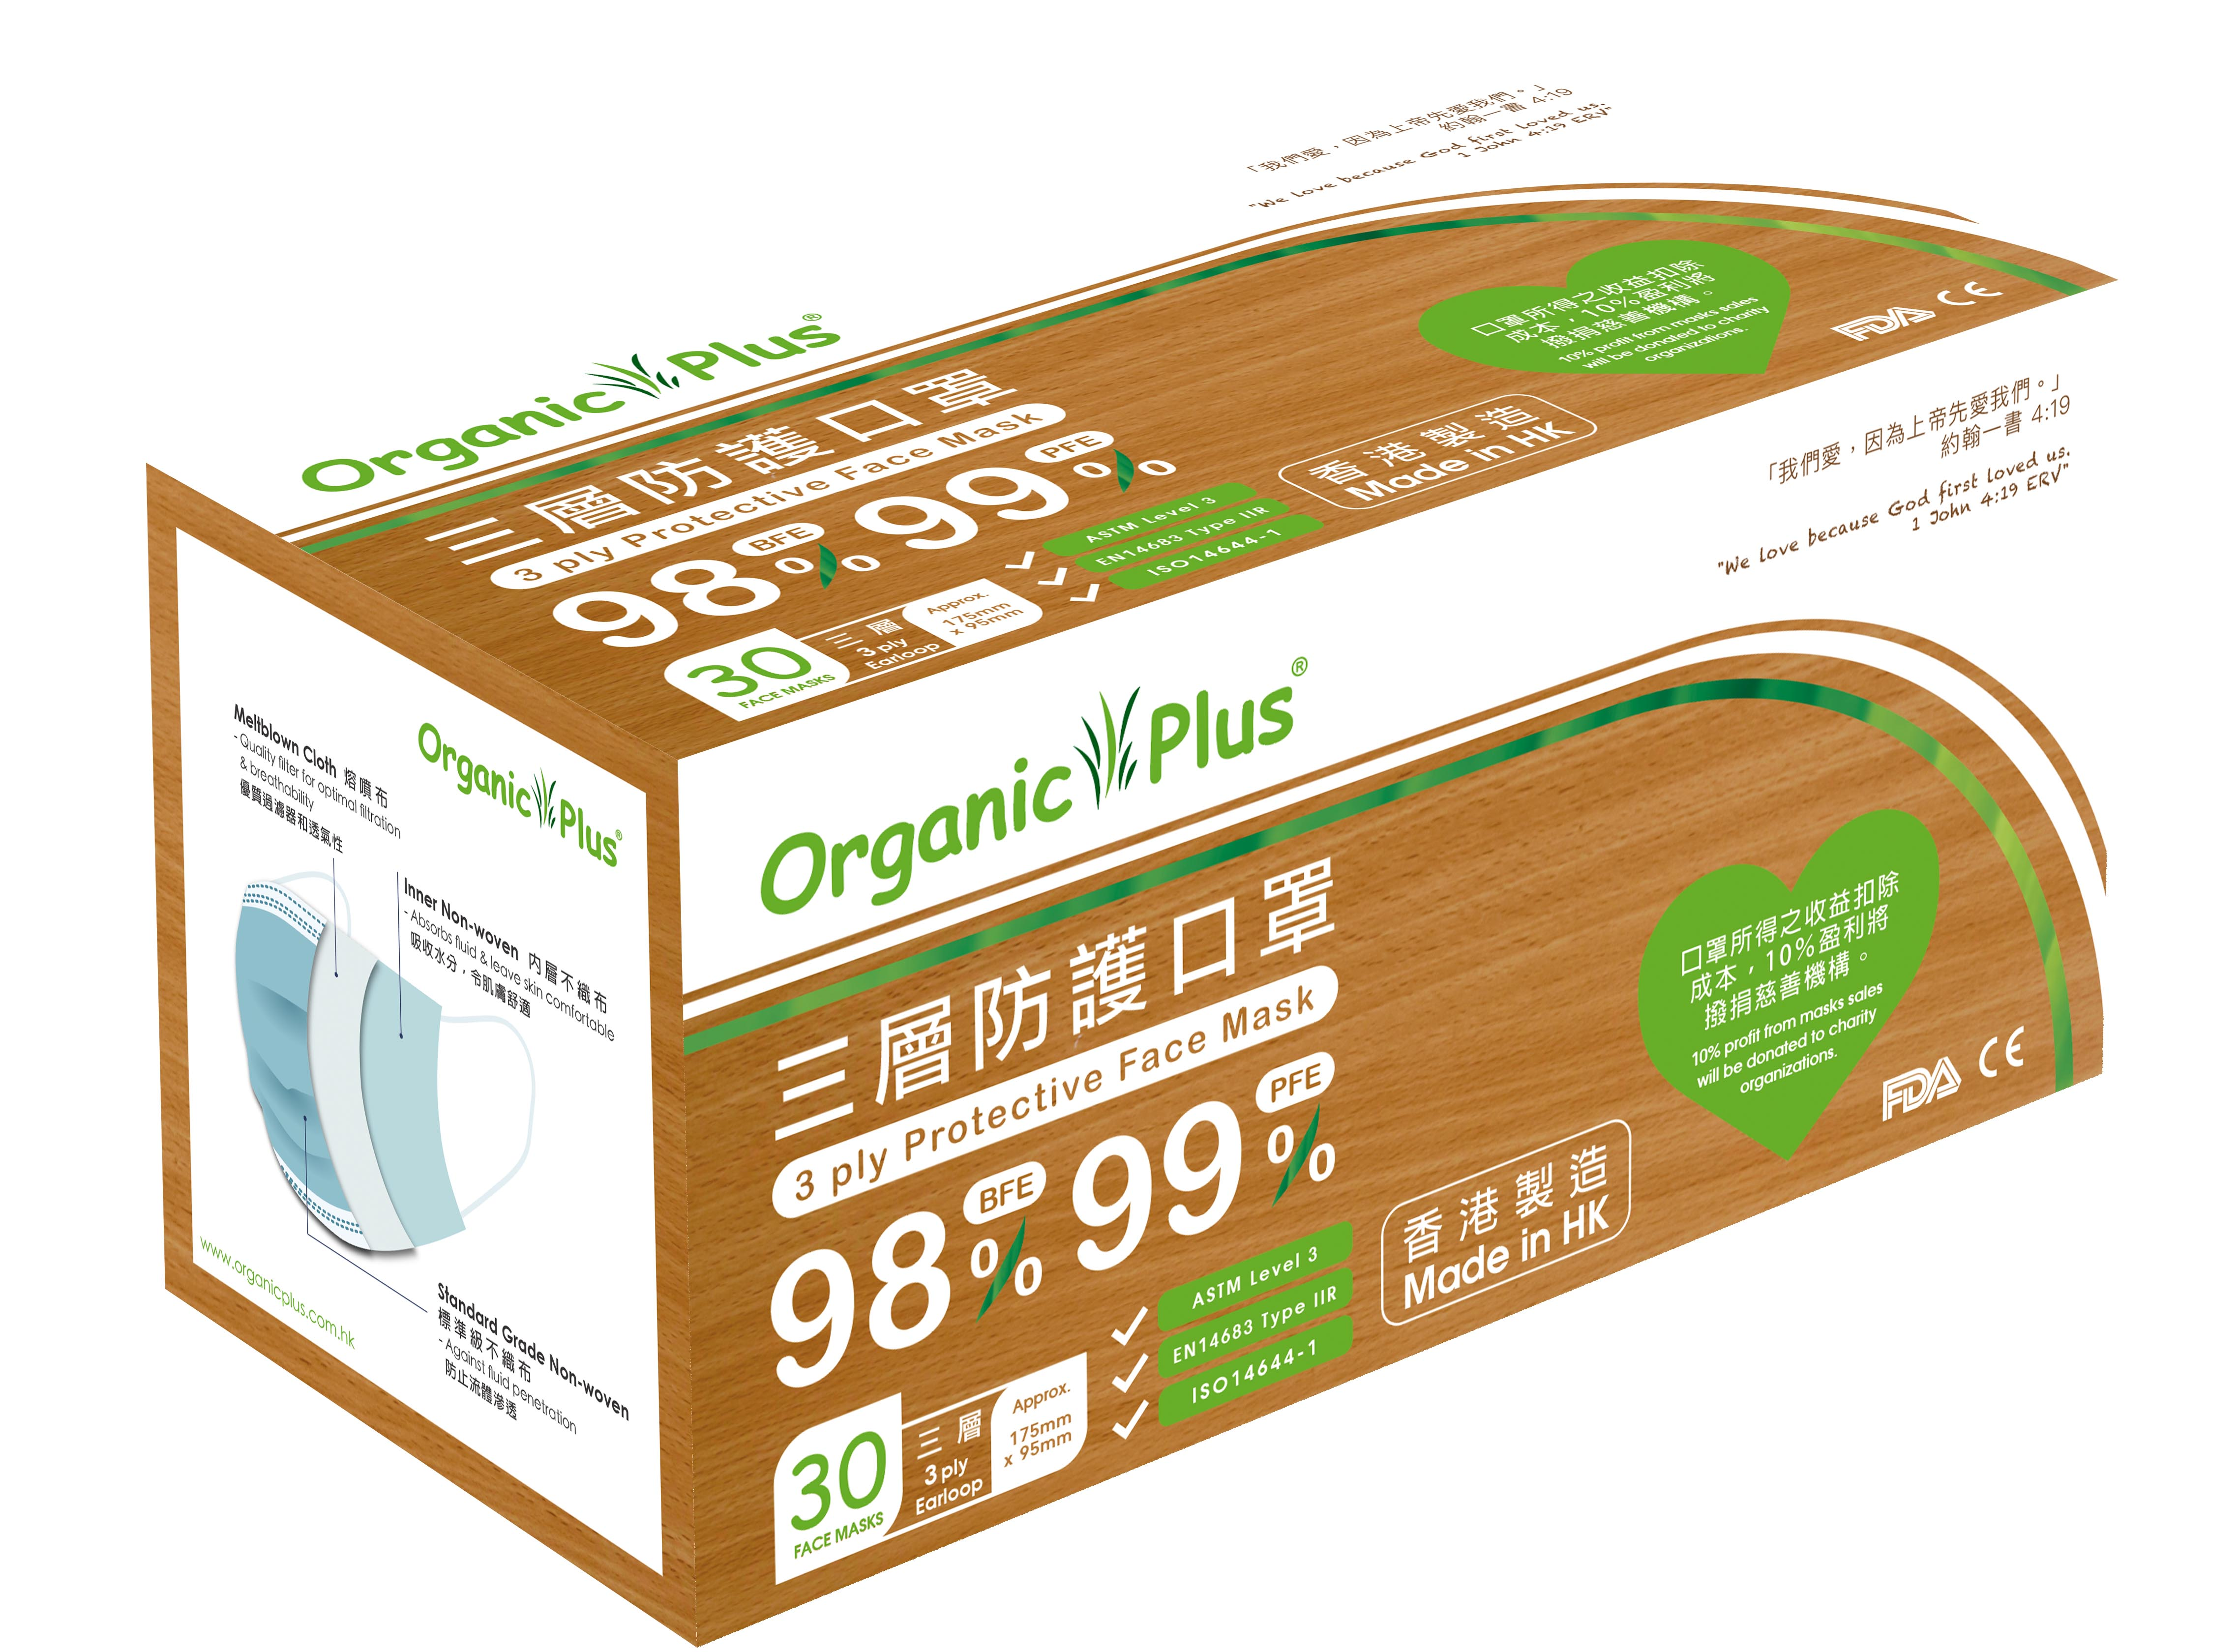 【$25 discount for each 7 boxes+Free Delivery】Organic Plus 3ply Protective Face Mask (30 Face Masks) at least 7 boxes (Delivery period is August 15-25)